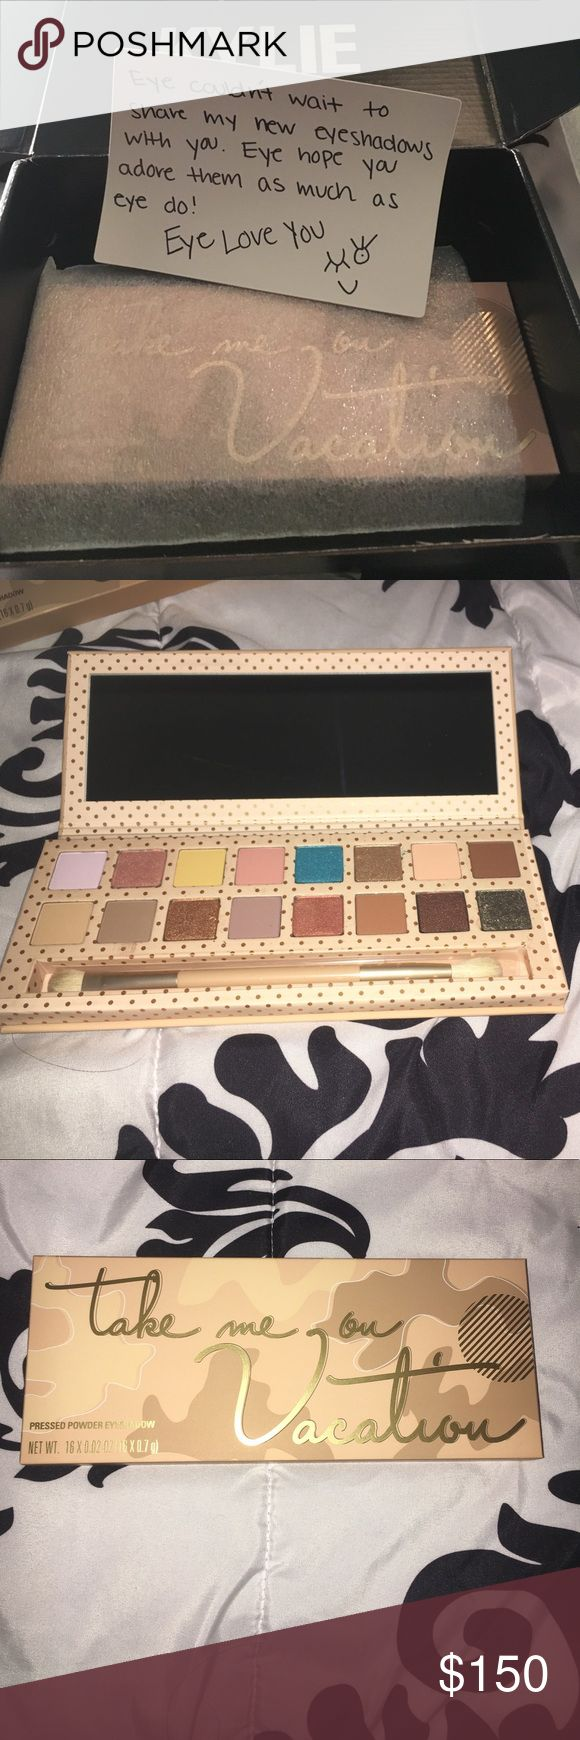 Vacation palette - Kylie Jenner BRAND NEW!!! Right out of the box. SOLD OUT ON HER WEBSITE!! girls, I know you want this beautiful palette. I caved in and bought one for myself. Treat yourself too! It's perfect for the summer and the colors work so well 😭😍 Kylie Cosmetics Makeup Eyeshadow